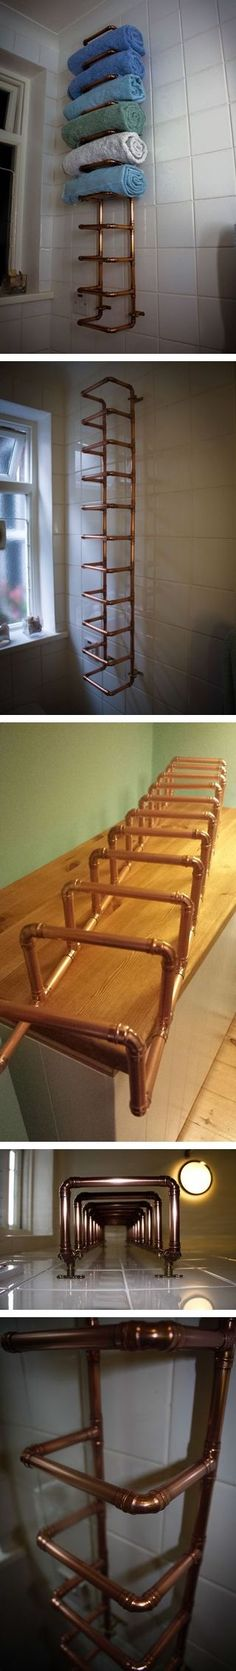 How to make copper pipe towel rail for bathroom step by step DIY tutorial instructions How to make copper pipe towel rail for bathroom step ...